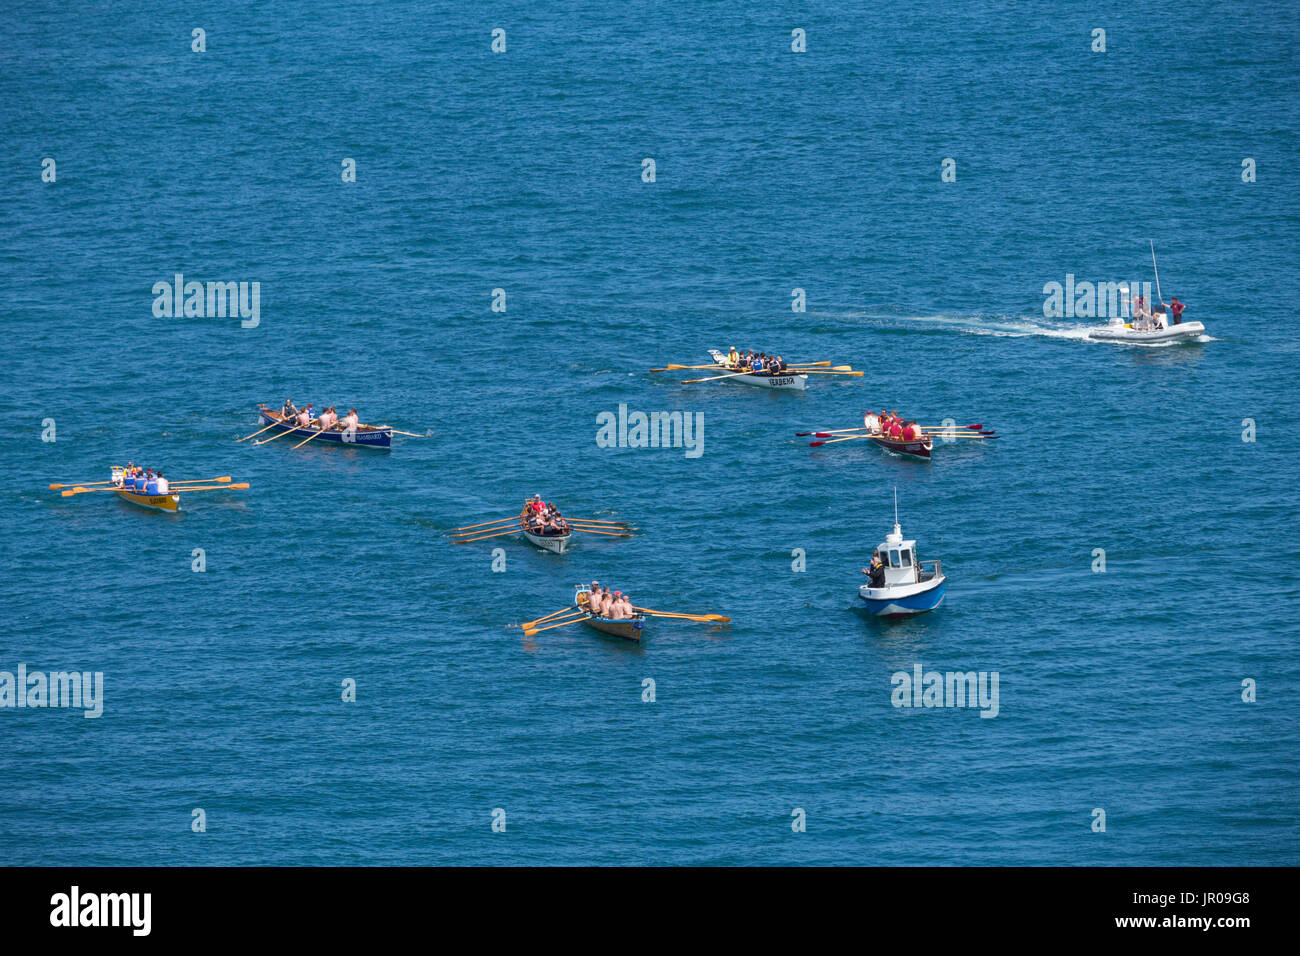 Ilfracombe Regatta 2017 boats departing from harbour - Stock Image